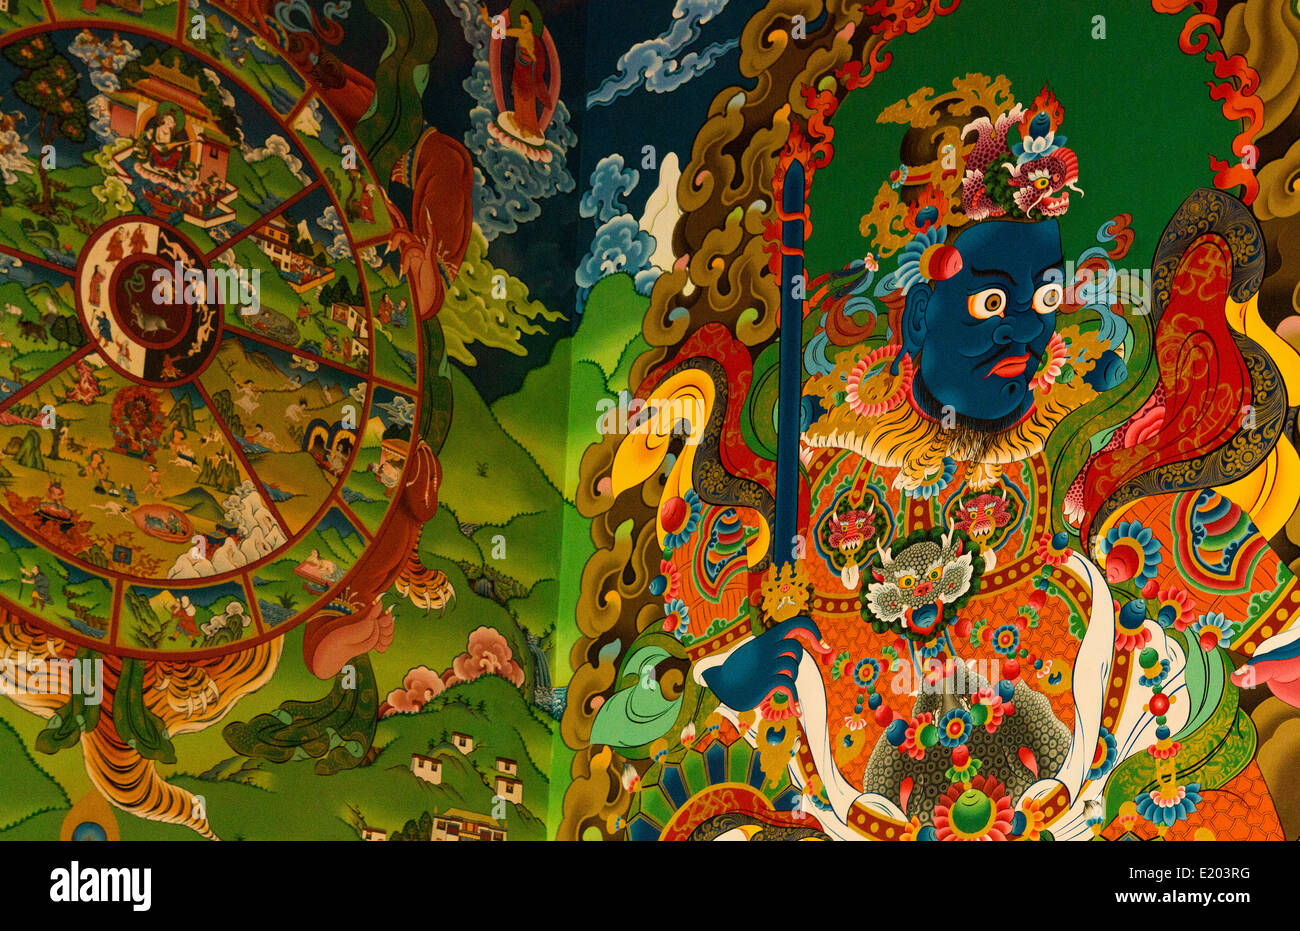 Kathmandu Nepal Colorful illustrations painted on the walls of the Drikung Kagyu Rinchenling monastery - Stock Image